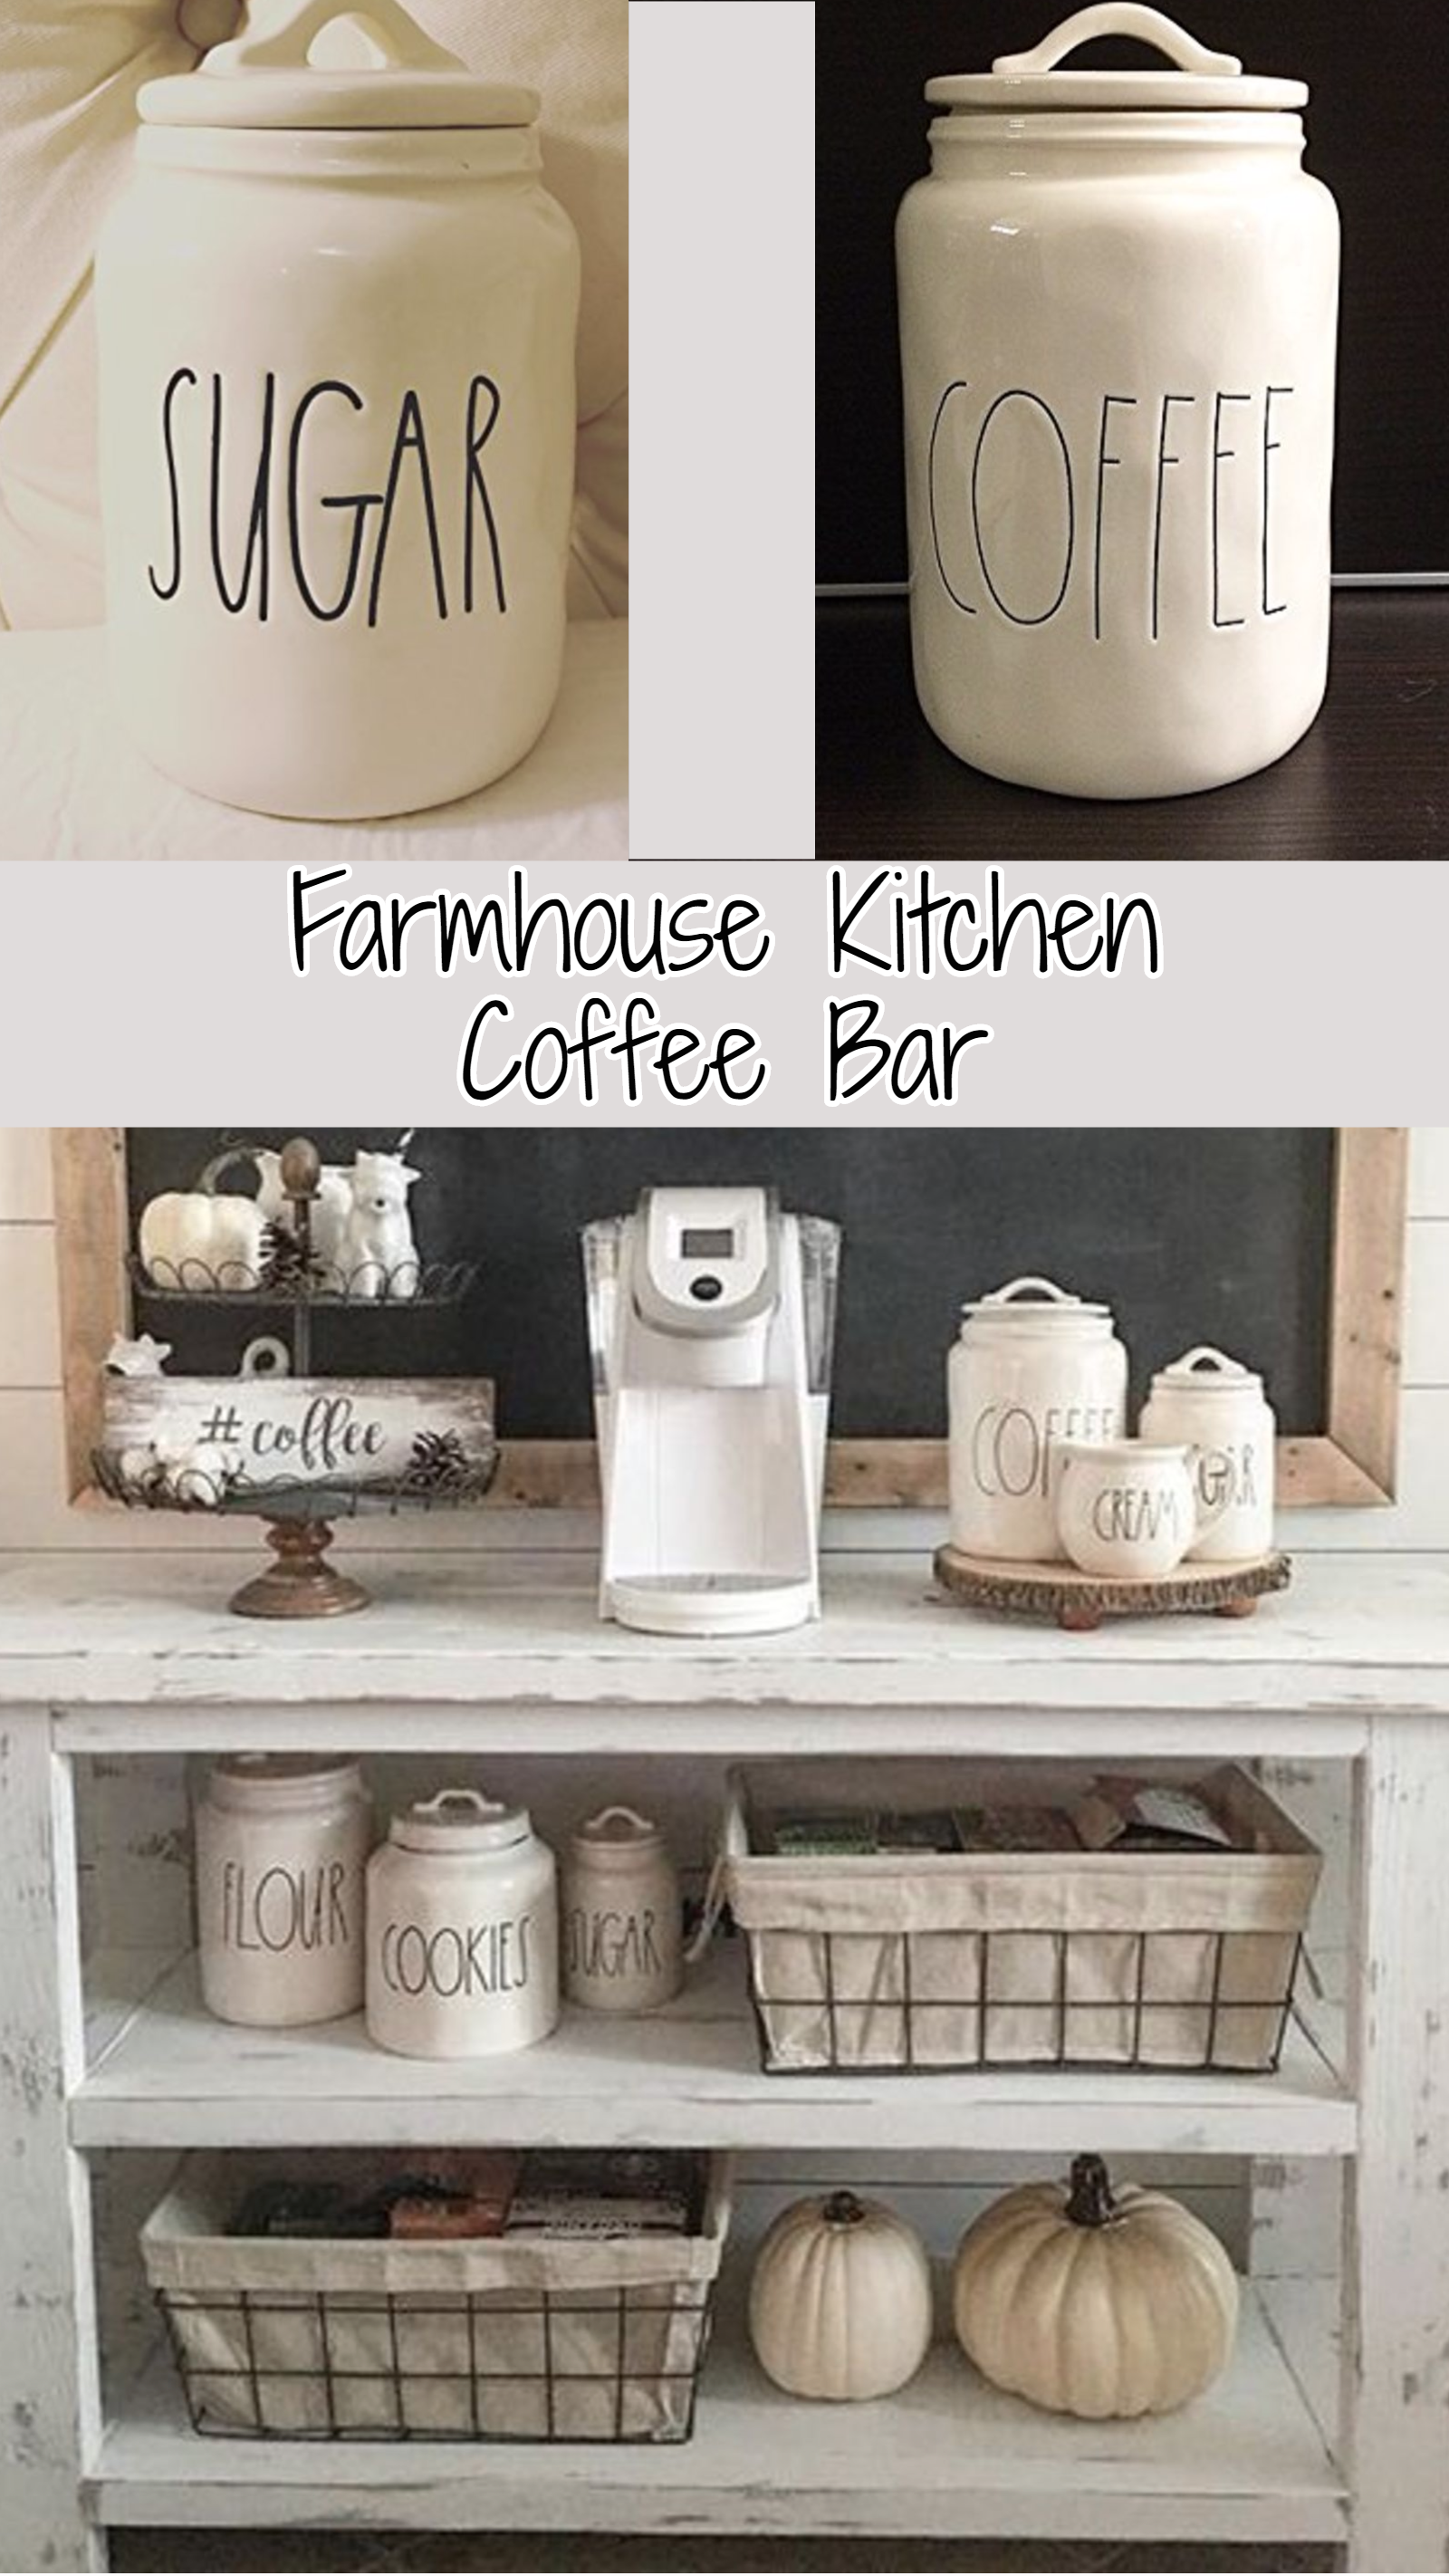 Farmhouse kitchen coffee bar i could use something similar to replace our current setup a old outdated microwave cart of course i would need it large